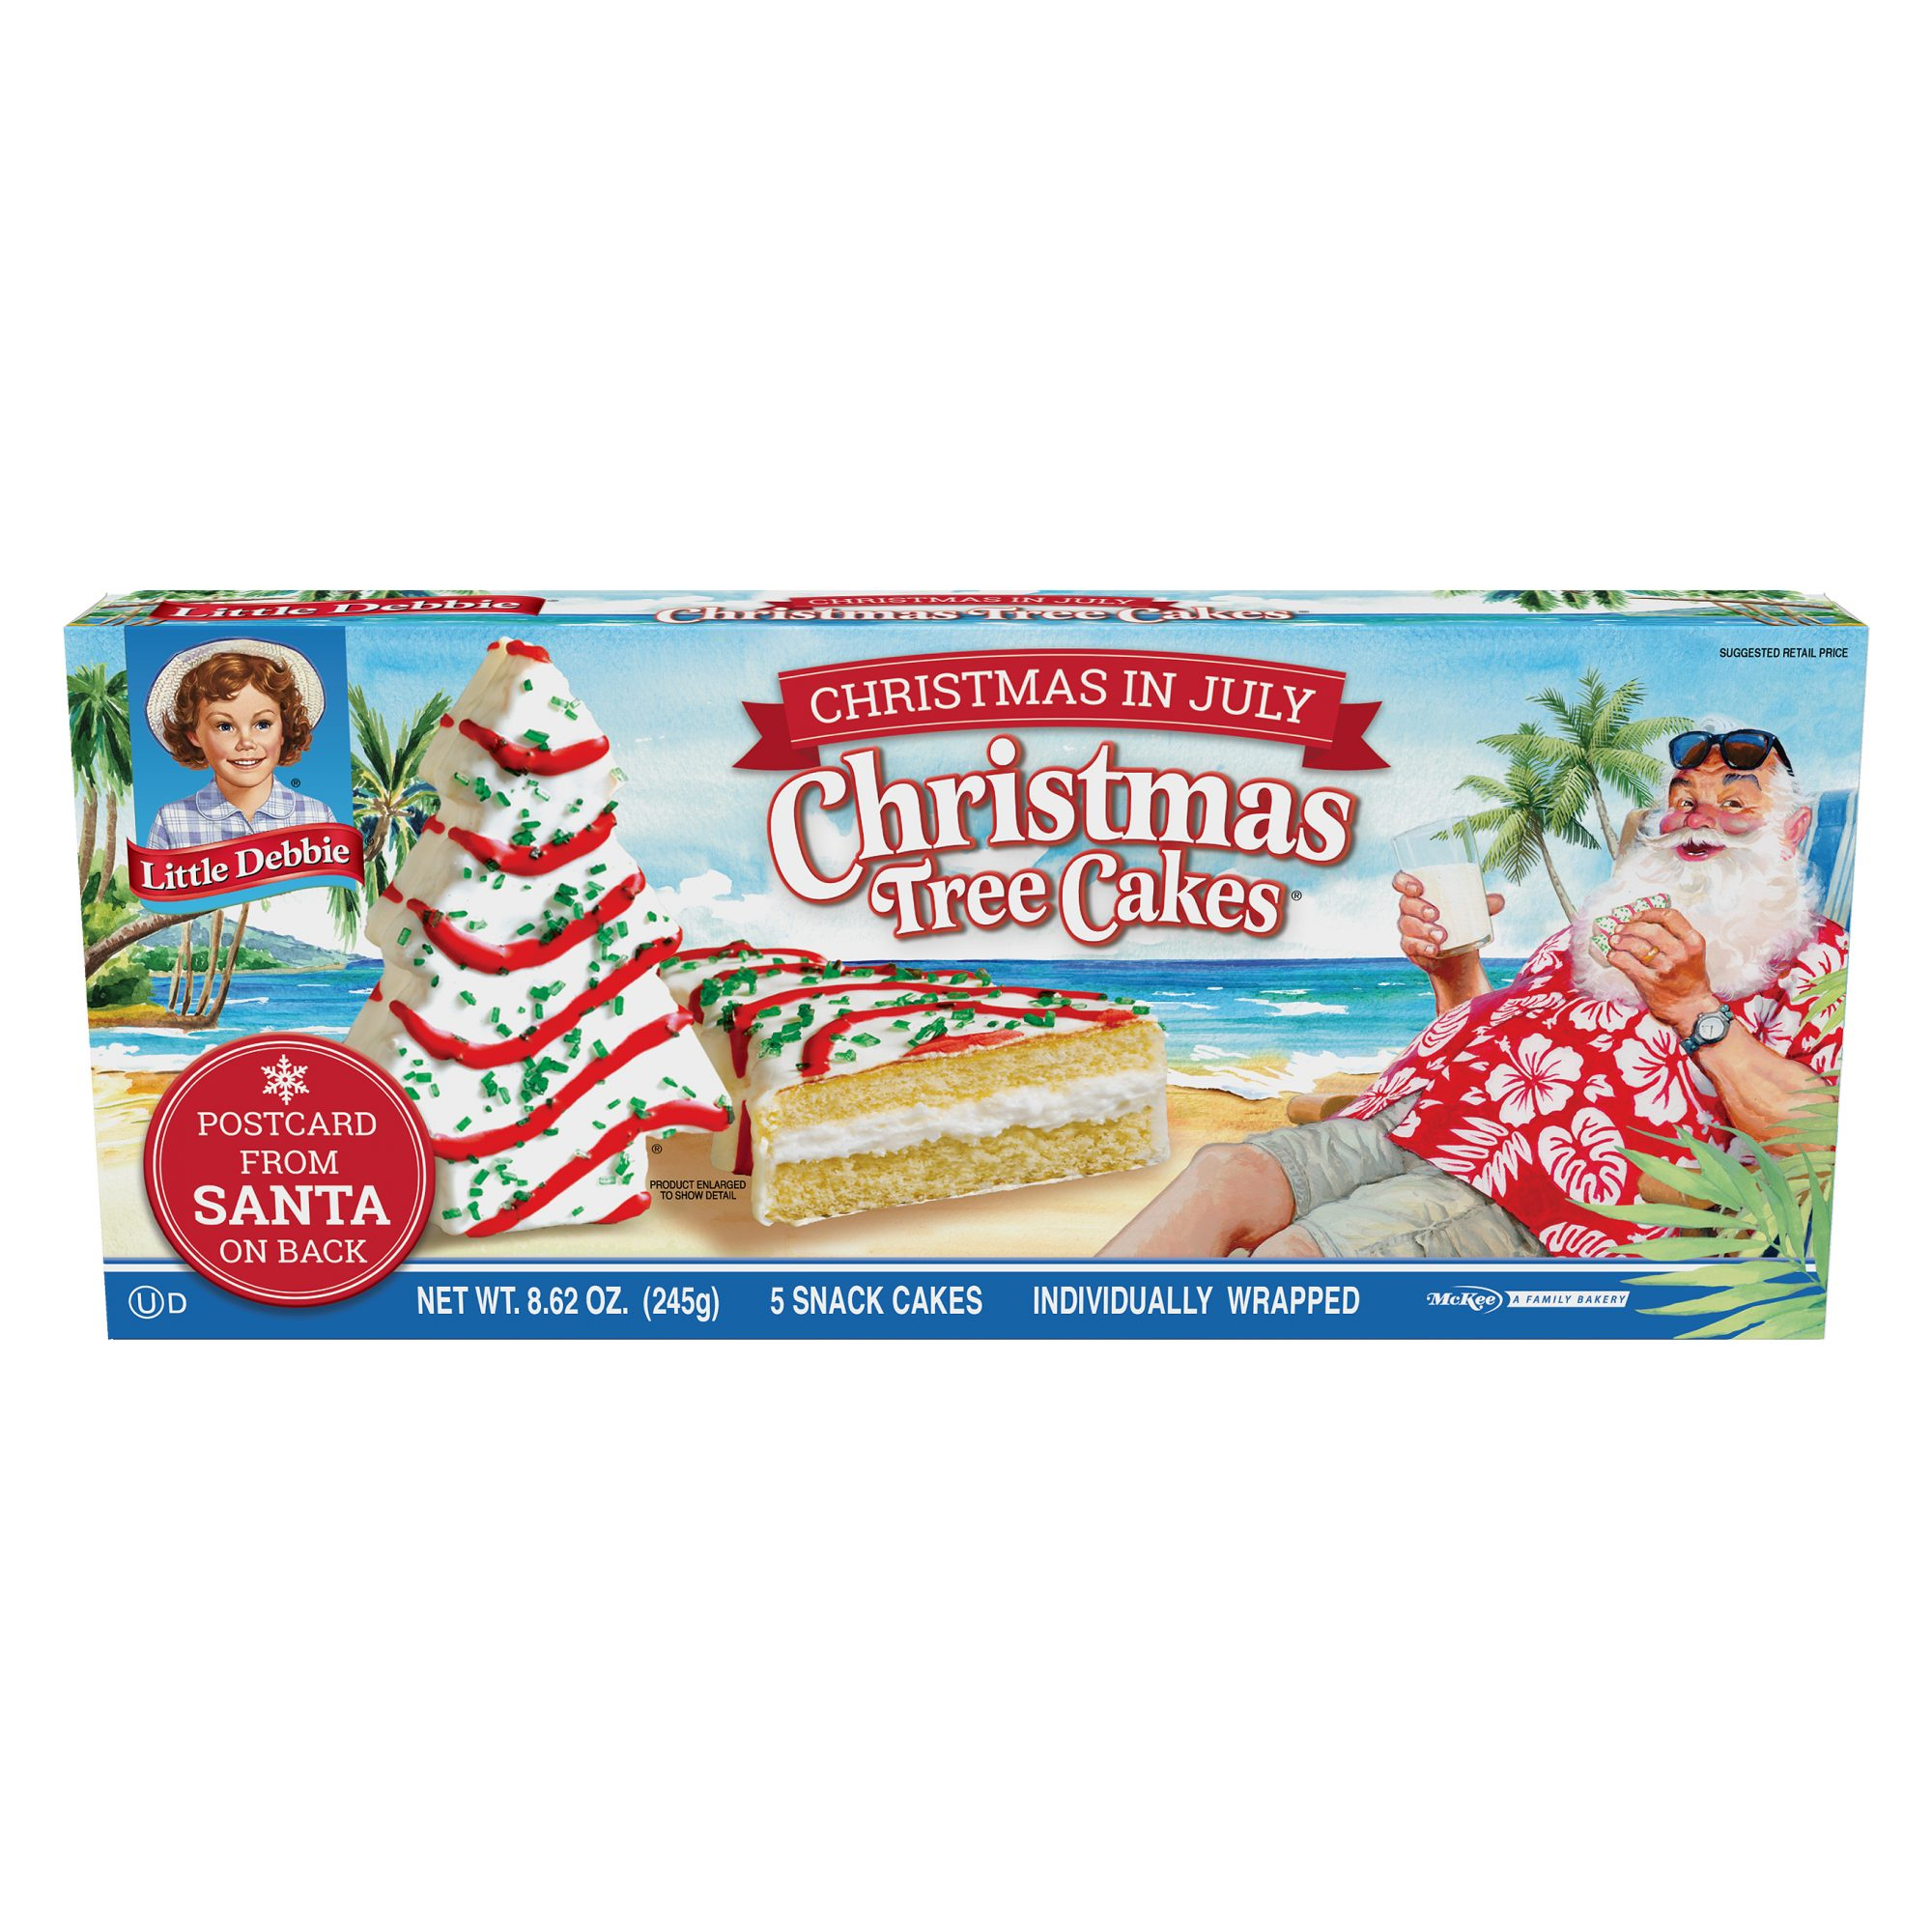 Santa Came Early! Little Debbie's Christmas Tree Snack Cakes Are Now at Walmart for the Summer